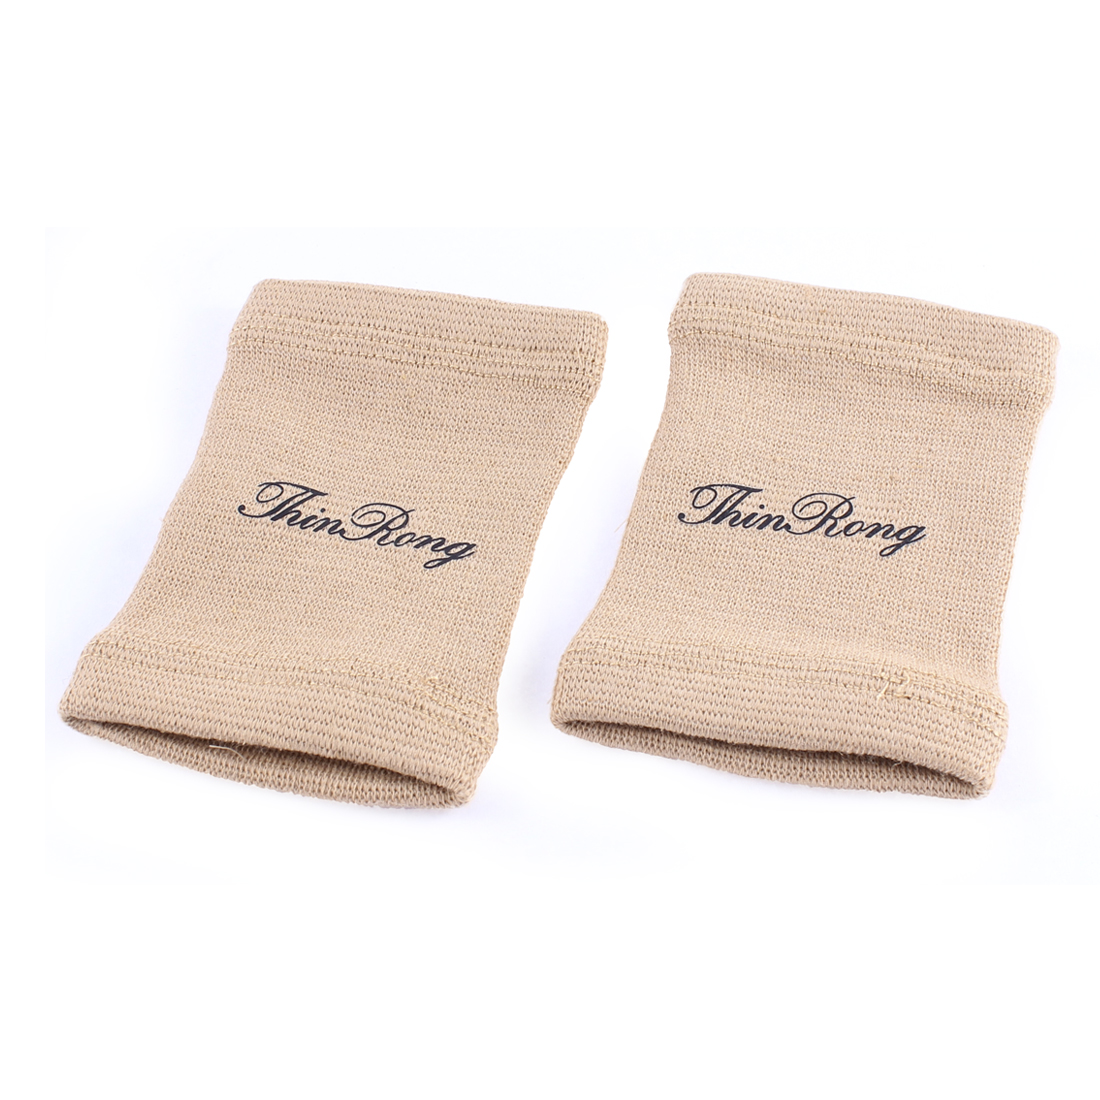 2 Pcs Sports Elastic Knitting Wrist Support Protector Khaki